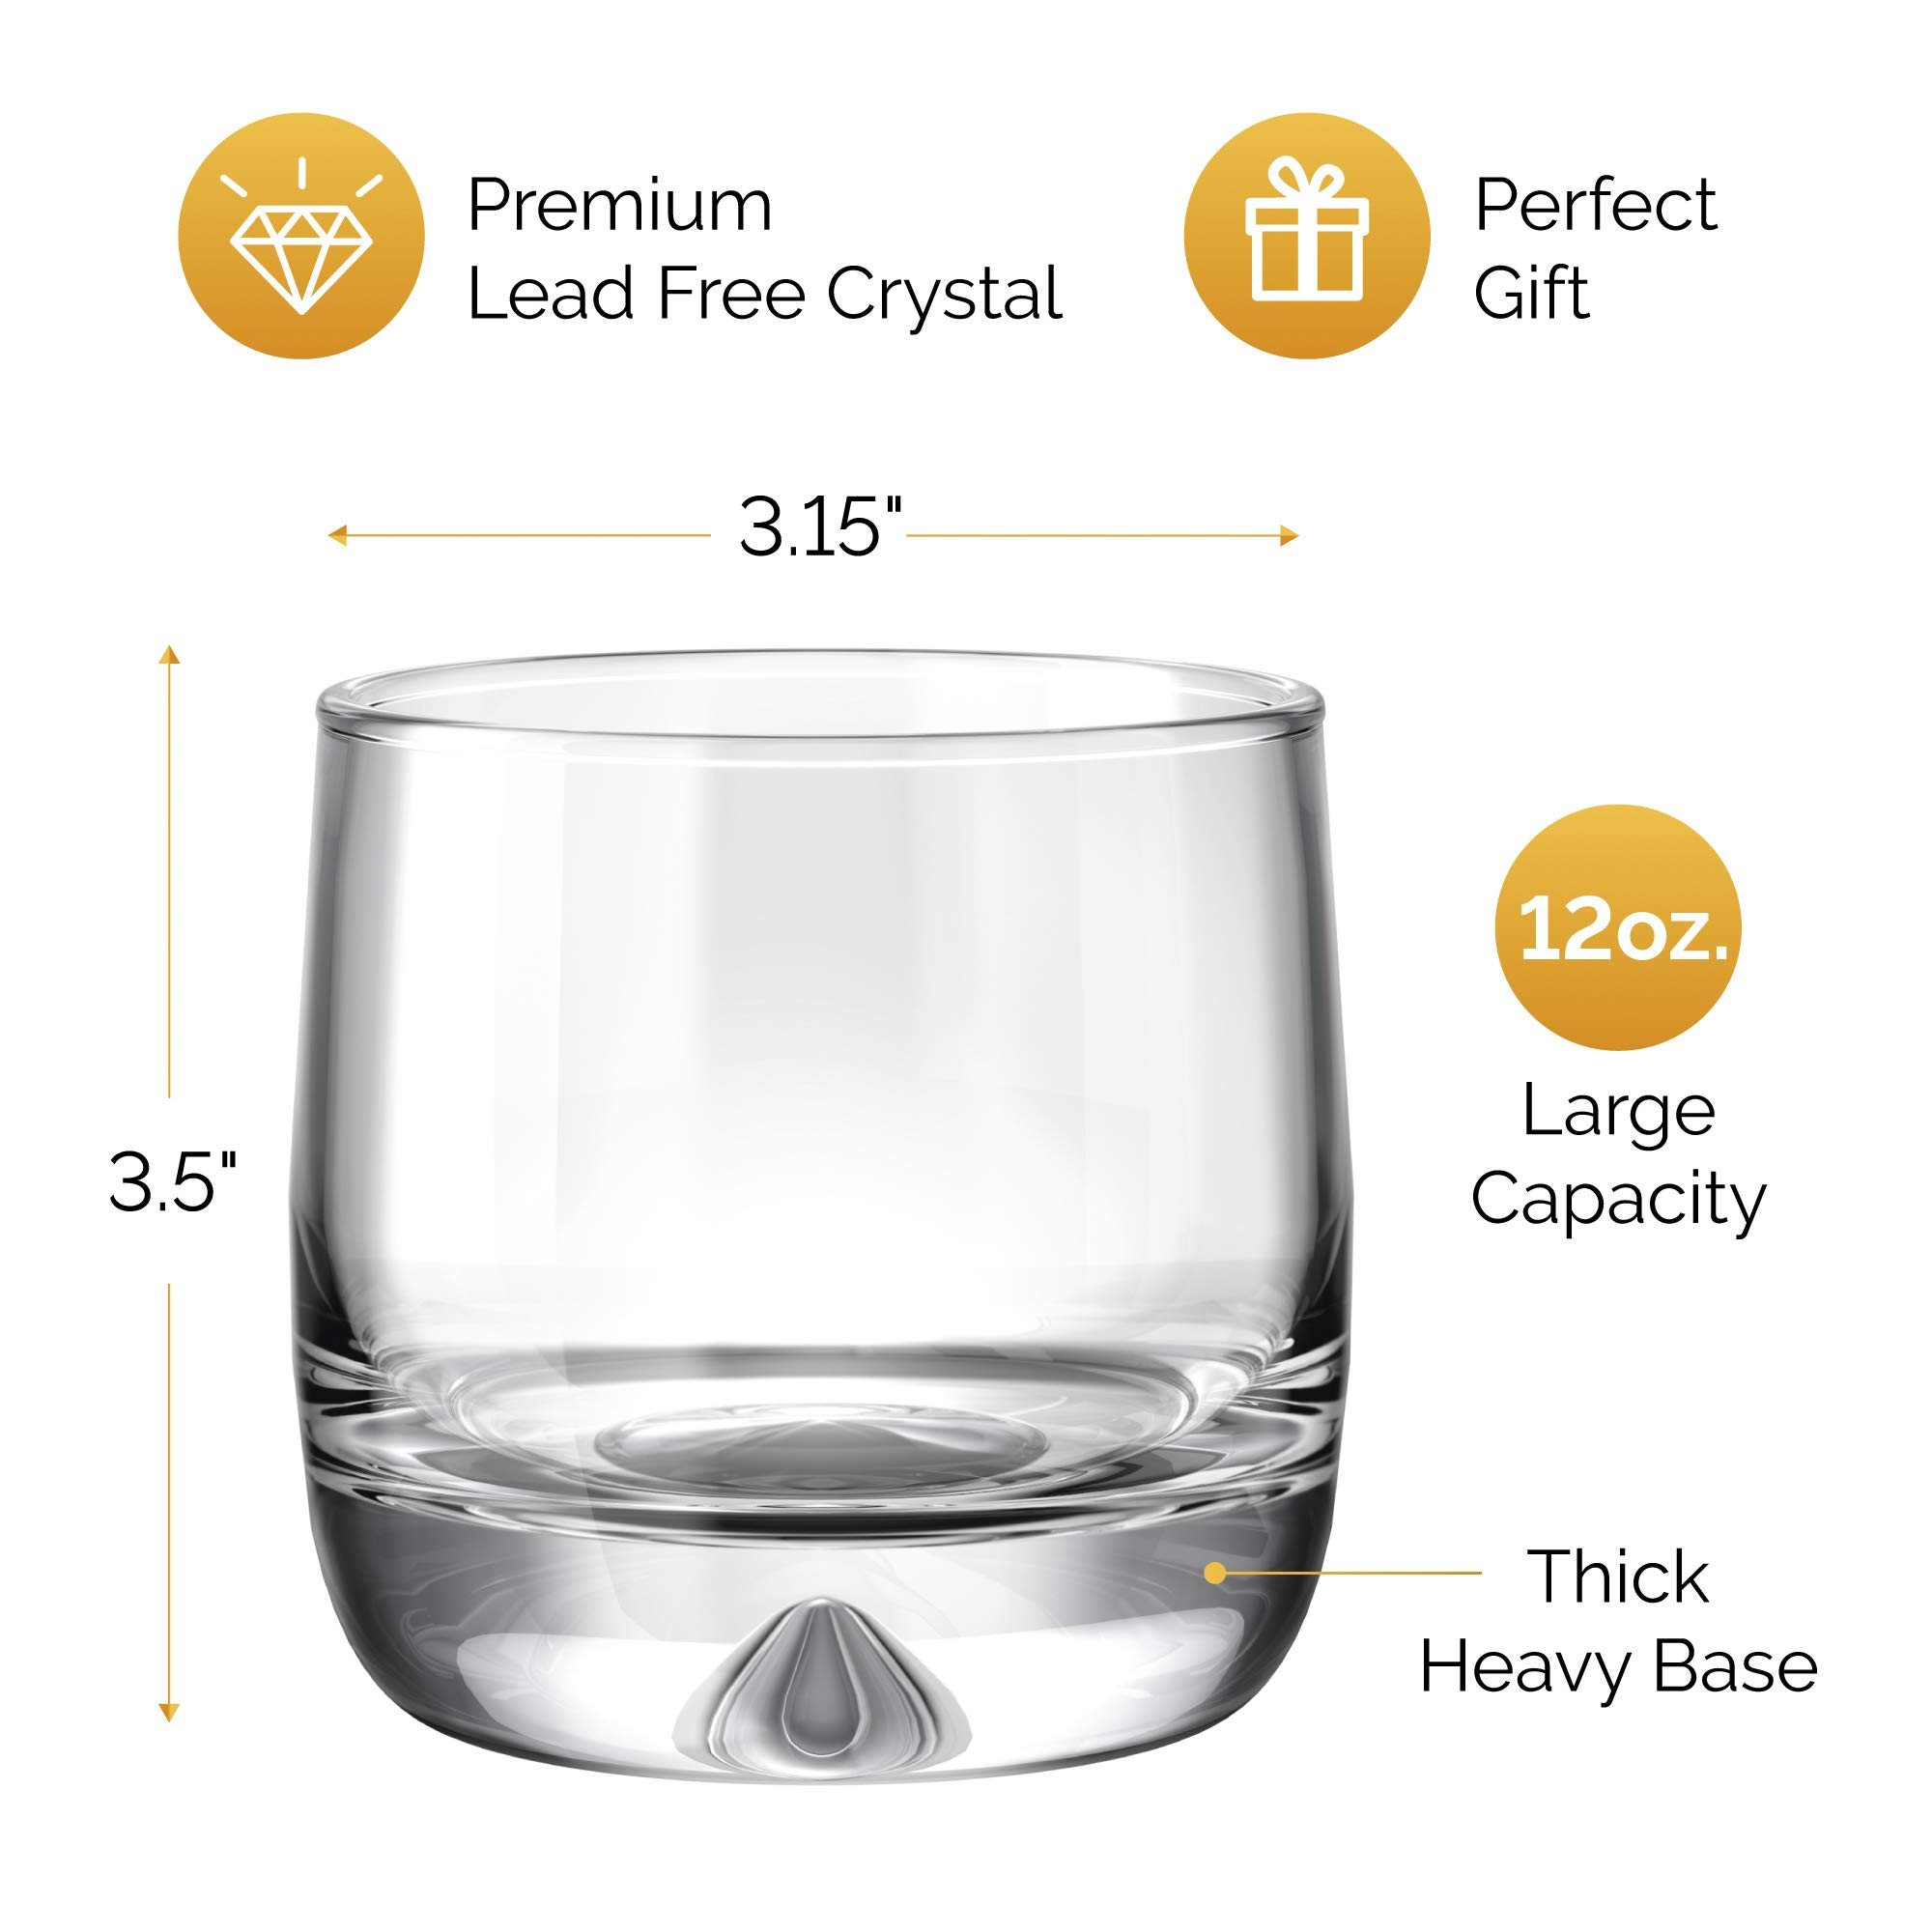 Premium Whiskey Glasses - Large - 12oz Set of 2 - Lead Free Hand Blown Crystal - Thick Weighted Bottom - Seamless Handmade Design - Perfect for Scotch, Bourbon, Manhattans, Old Fashioned's, Cocktails. by Mofado (Image #2)